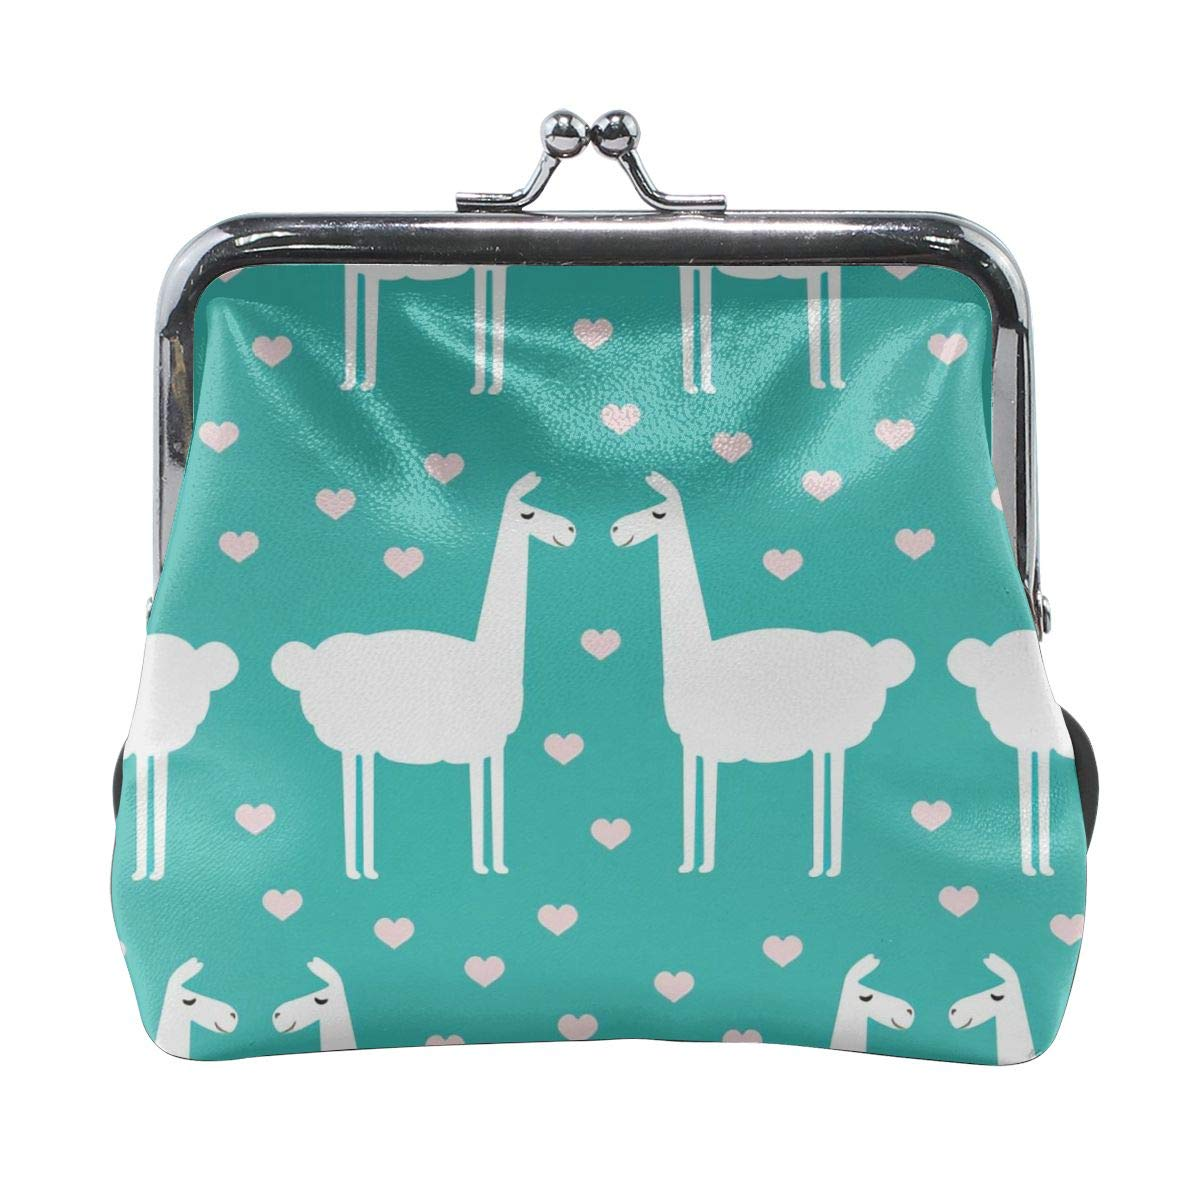 Little Green Love Kiss Llama Vintage Pouch Girl Kiss-lock Change Purse Wallets Buckle Leather Coin Purses Key Woman Printed